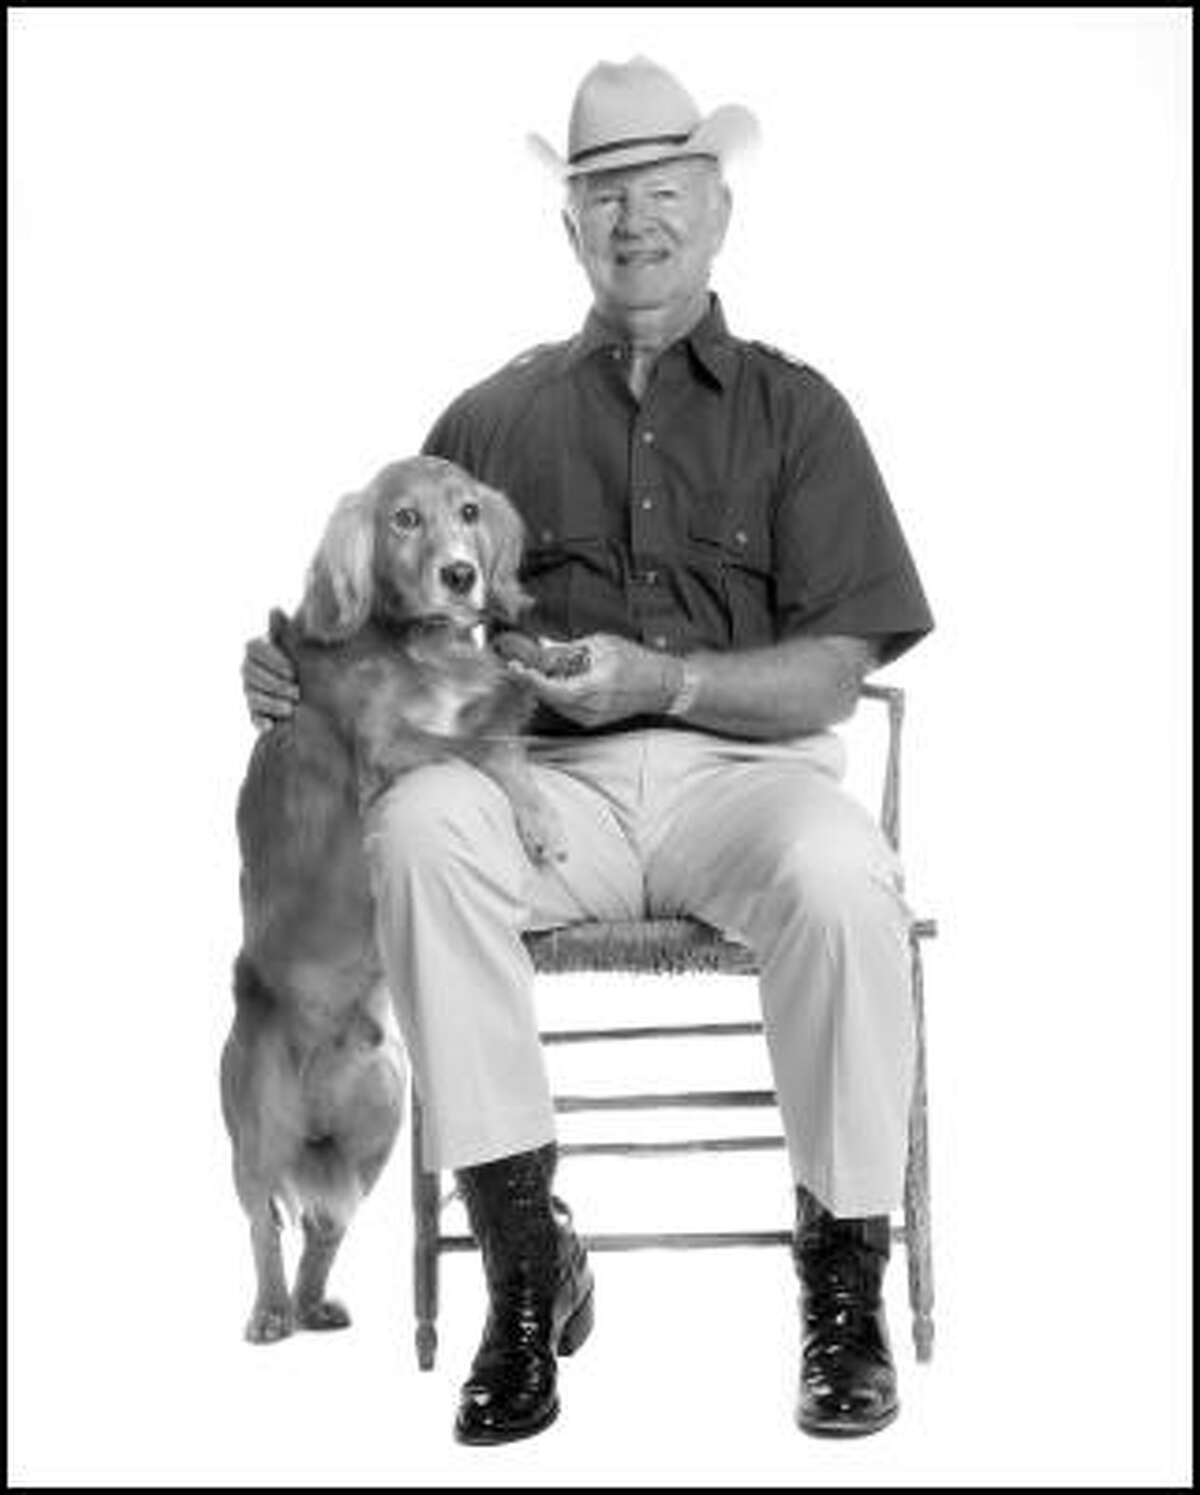 James Baker with his pet, from new photo book Top Dogs and Their Pets.